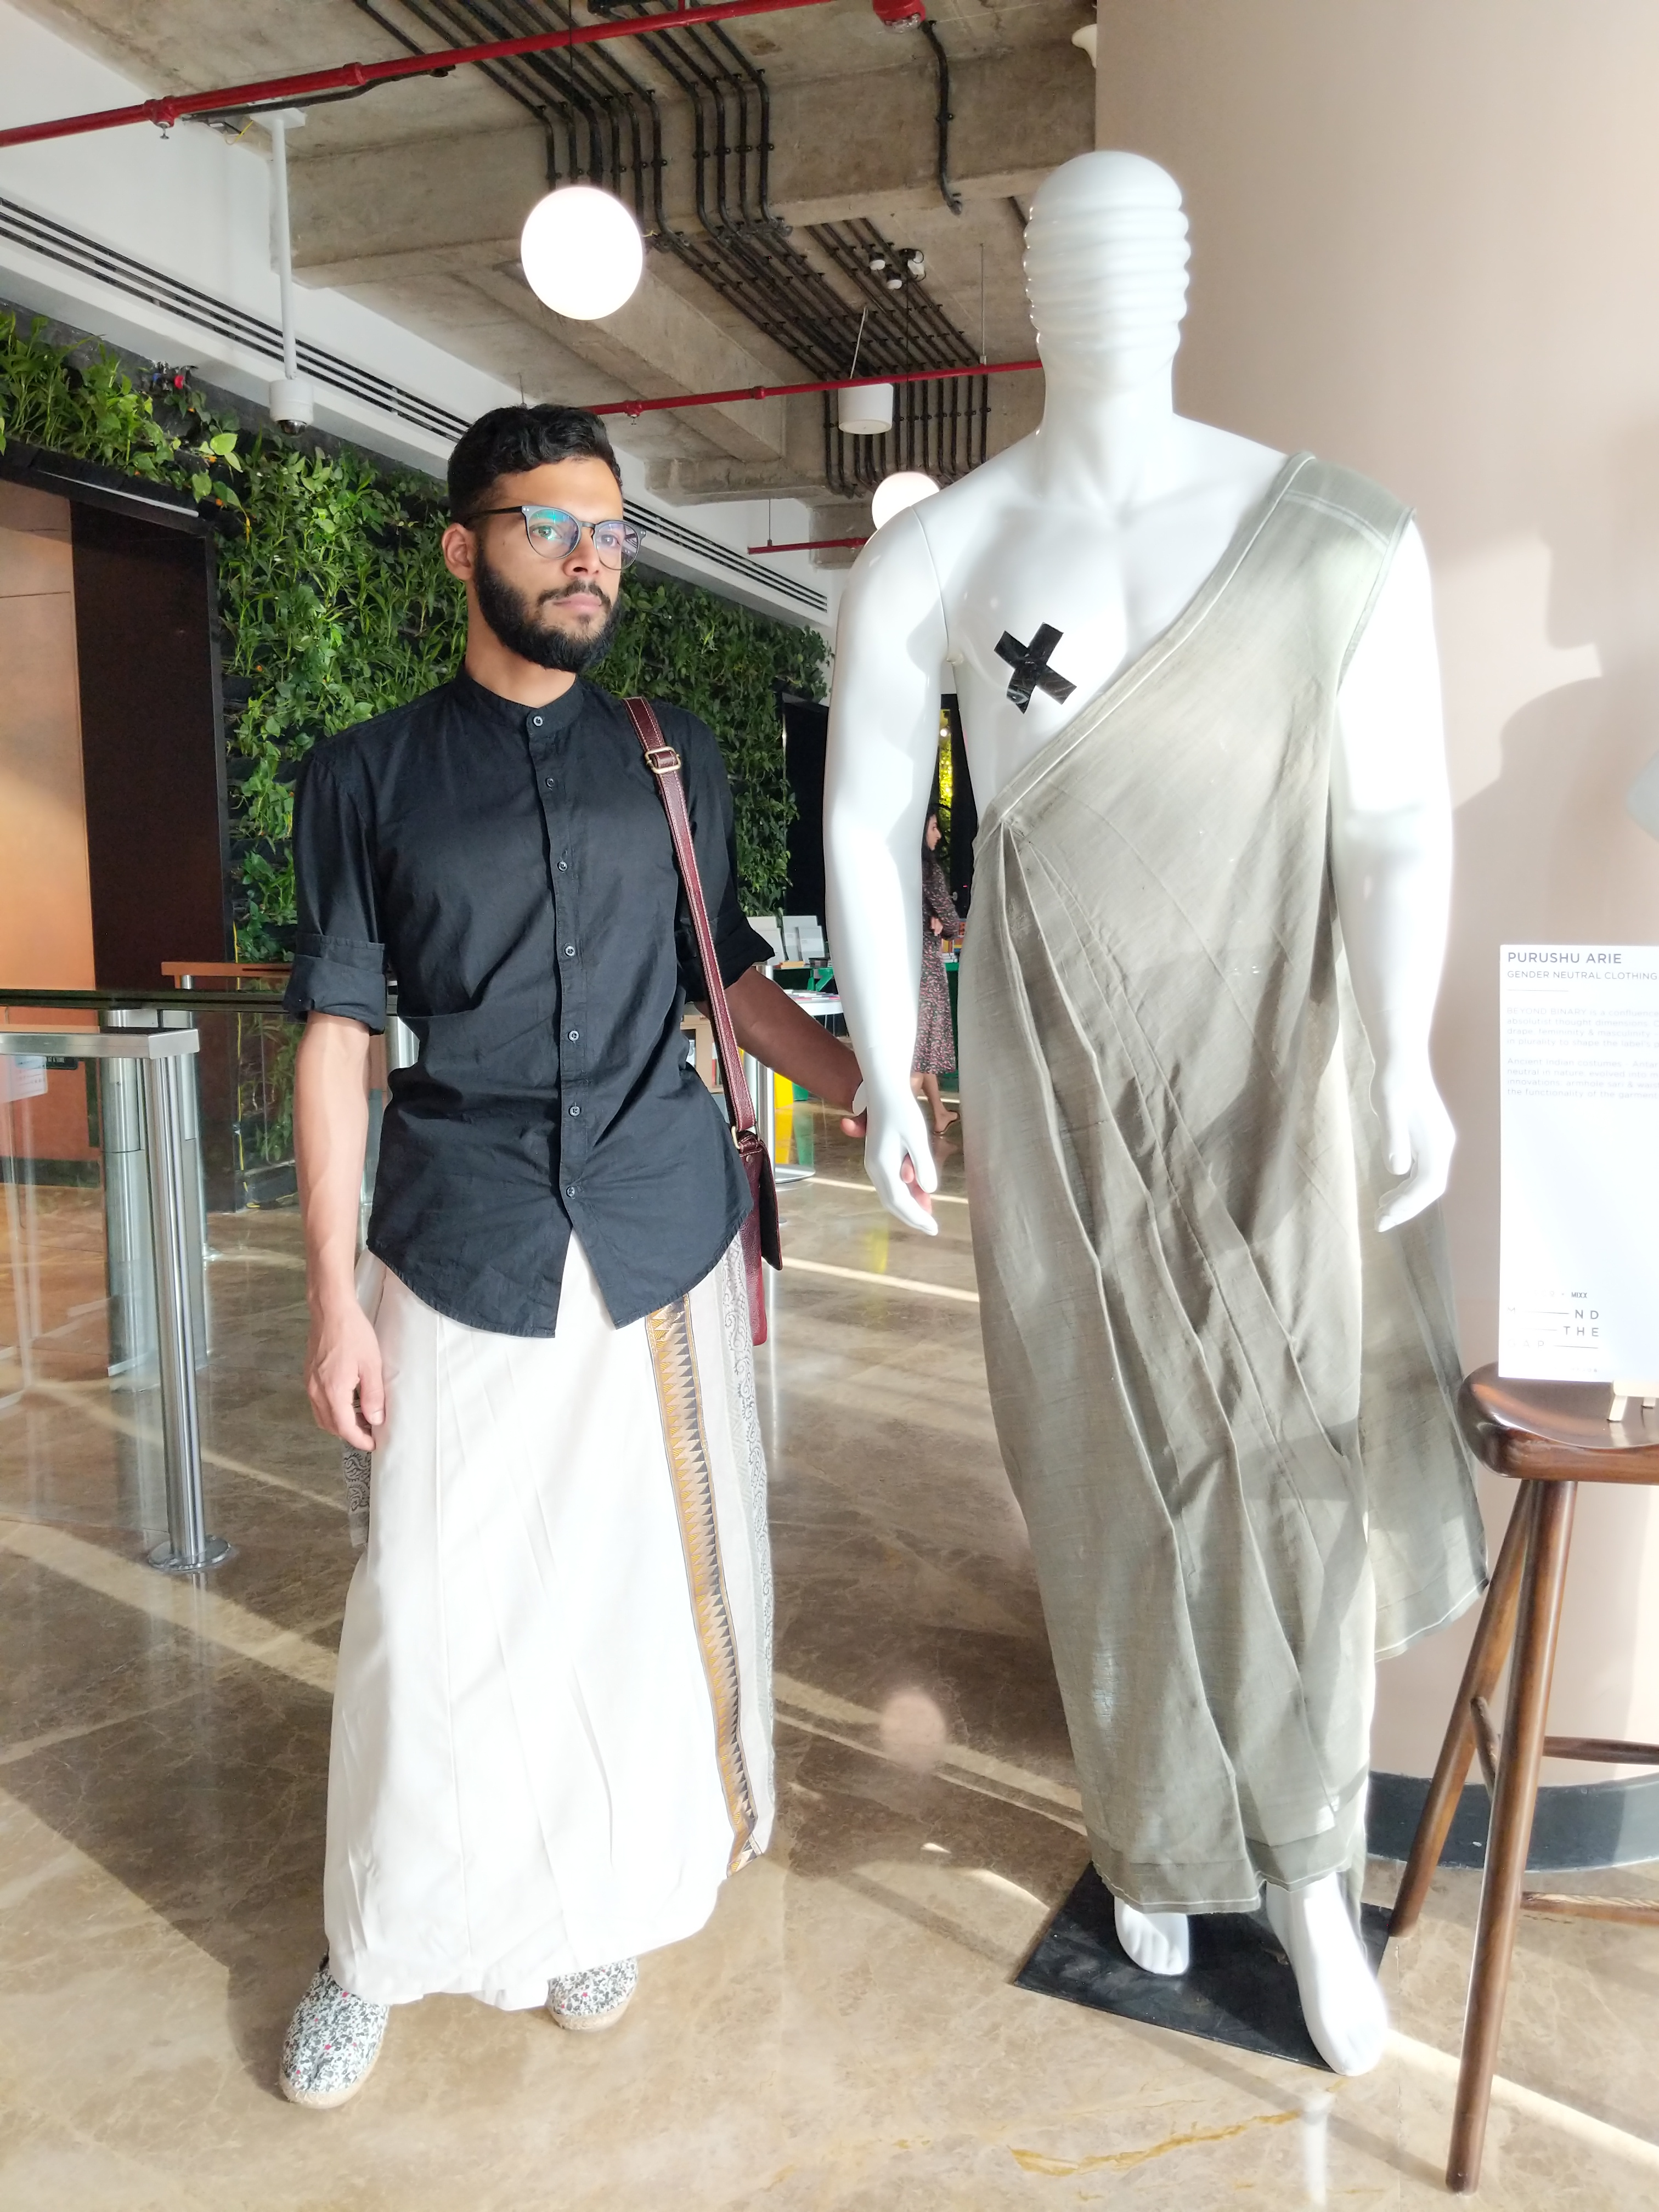 Purushu Arie - Gender Neutral Clothing On Body Form